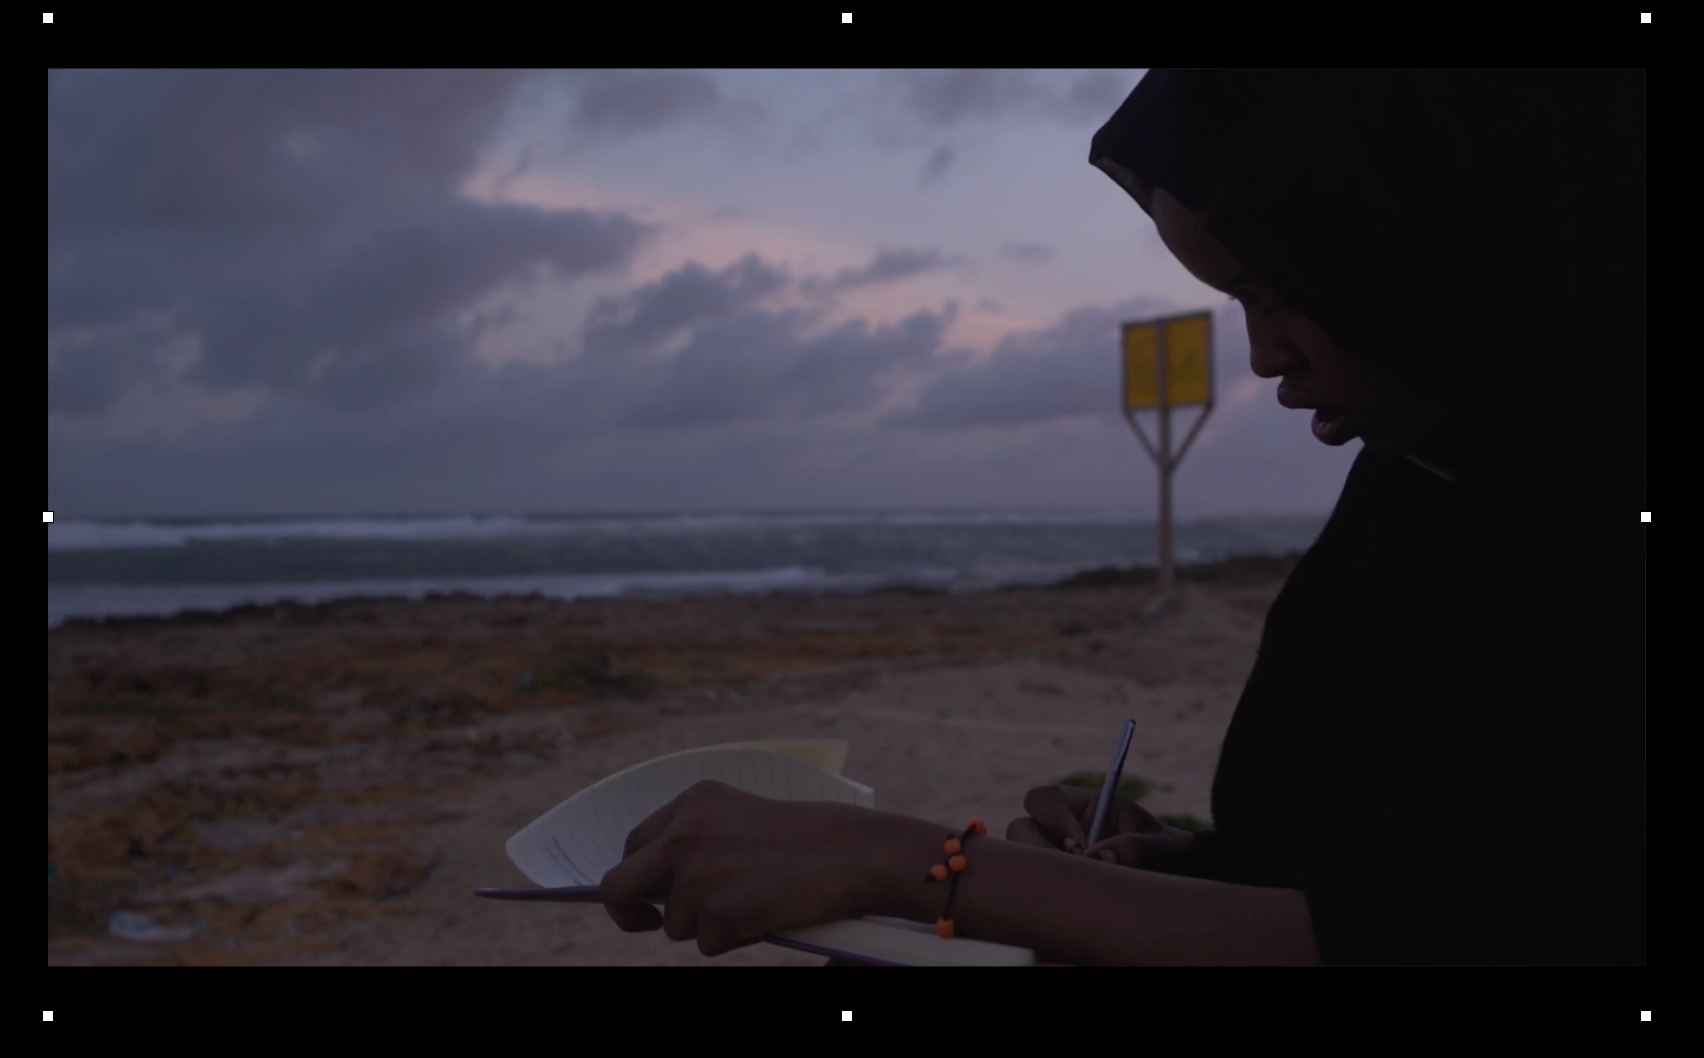 Somalia, the mouth of the shark. Directed by Juan Pablo Domenech.